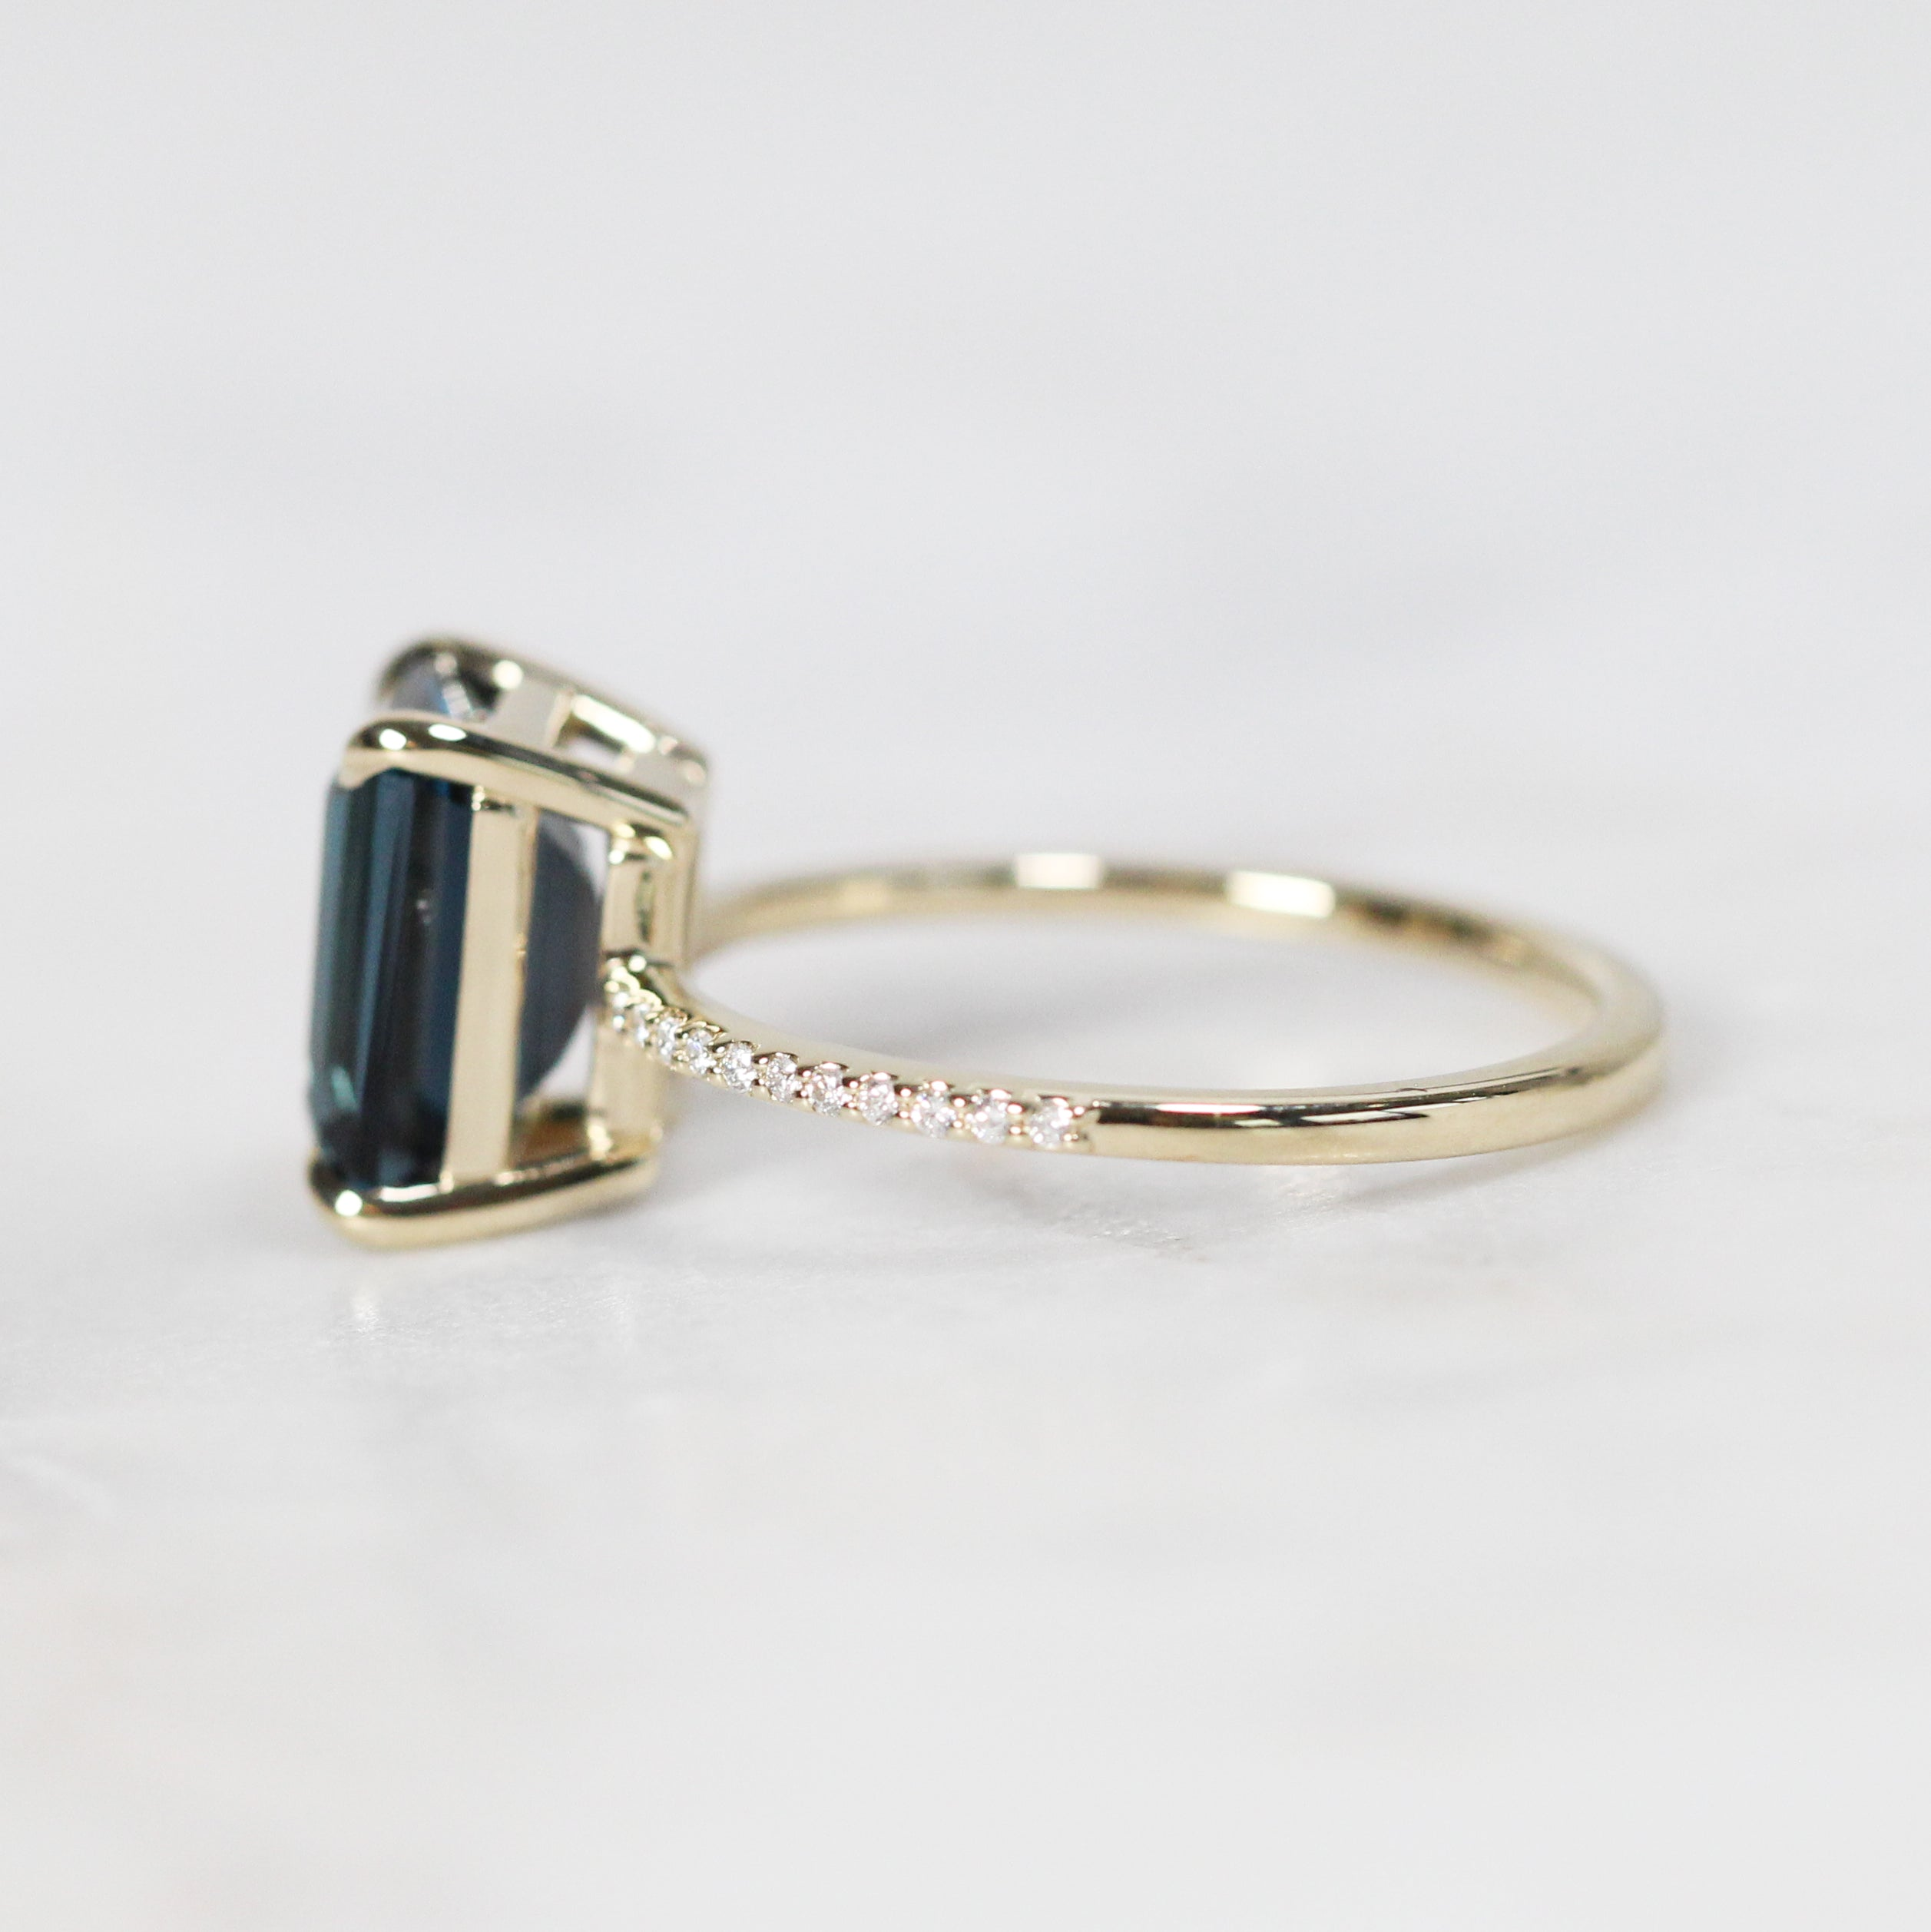 Mia Ring with 3.75ct London Blue Topaz Emerald Cut - Custom Made to Order - Celestial Diamonds ® by Midwinter Co.